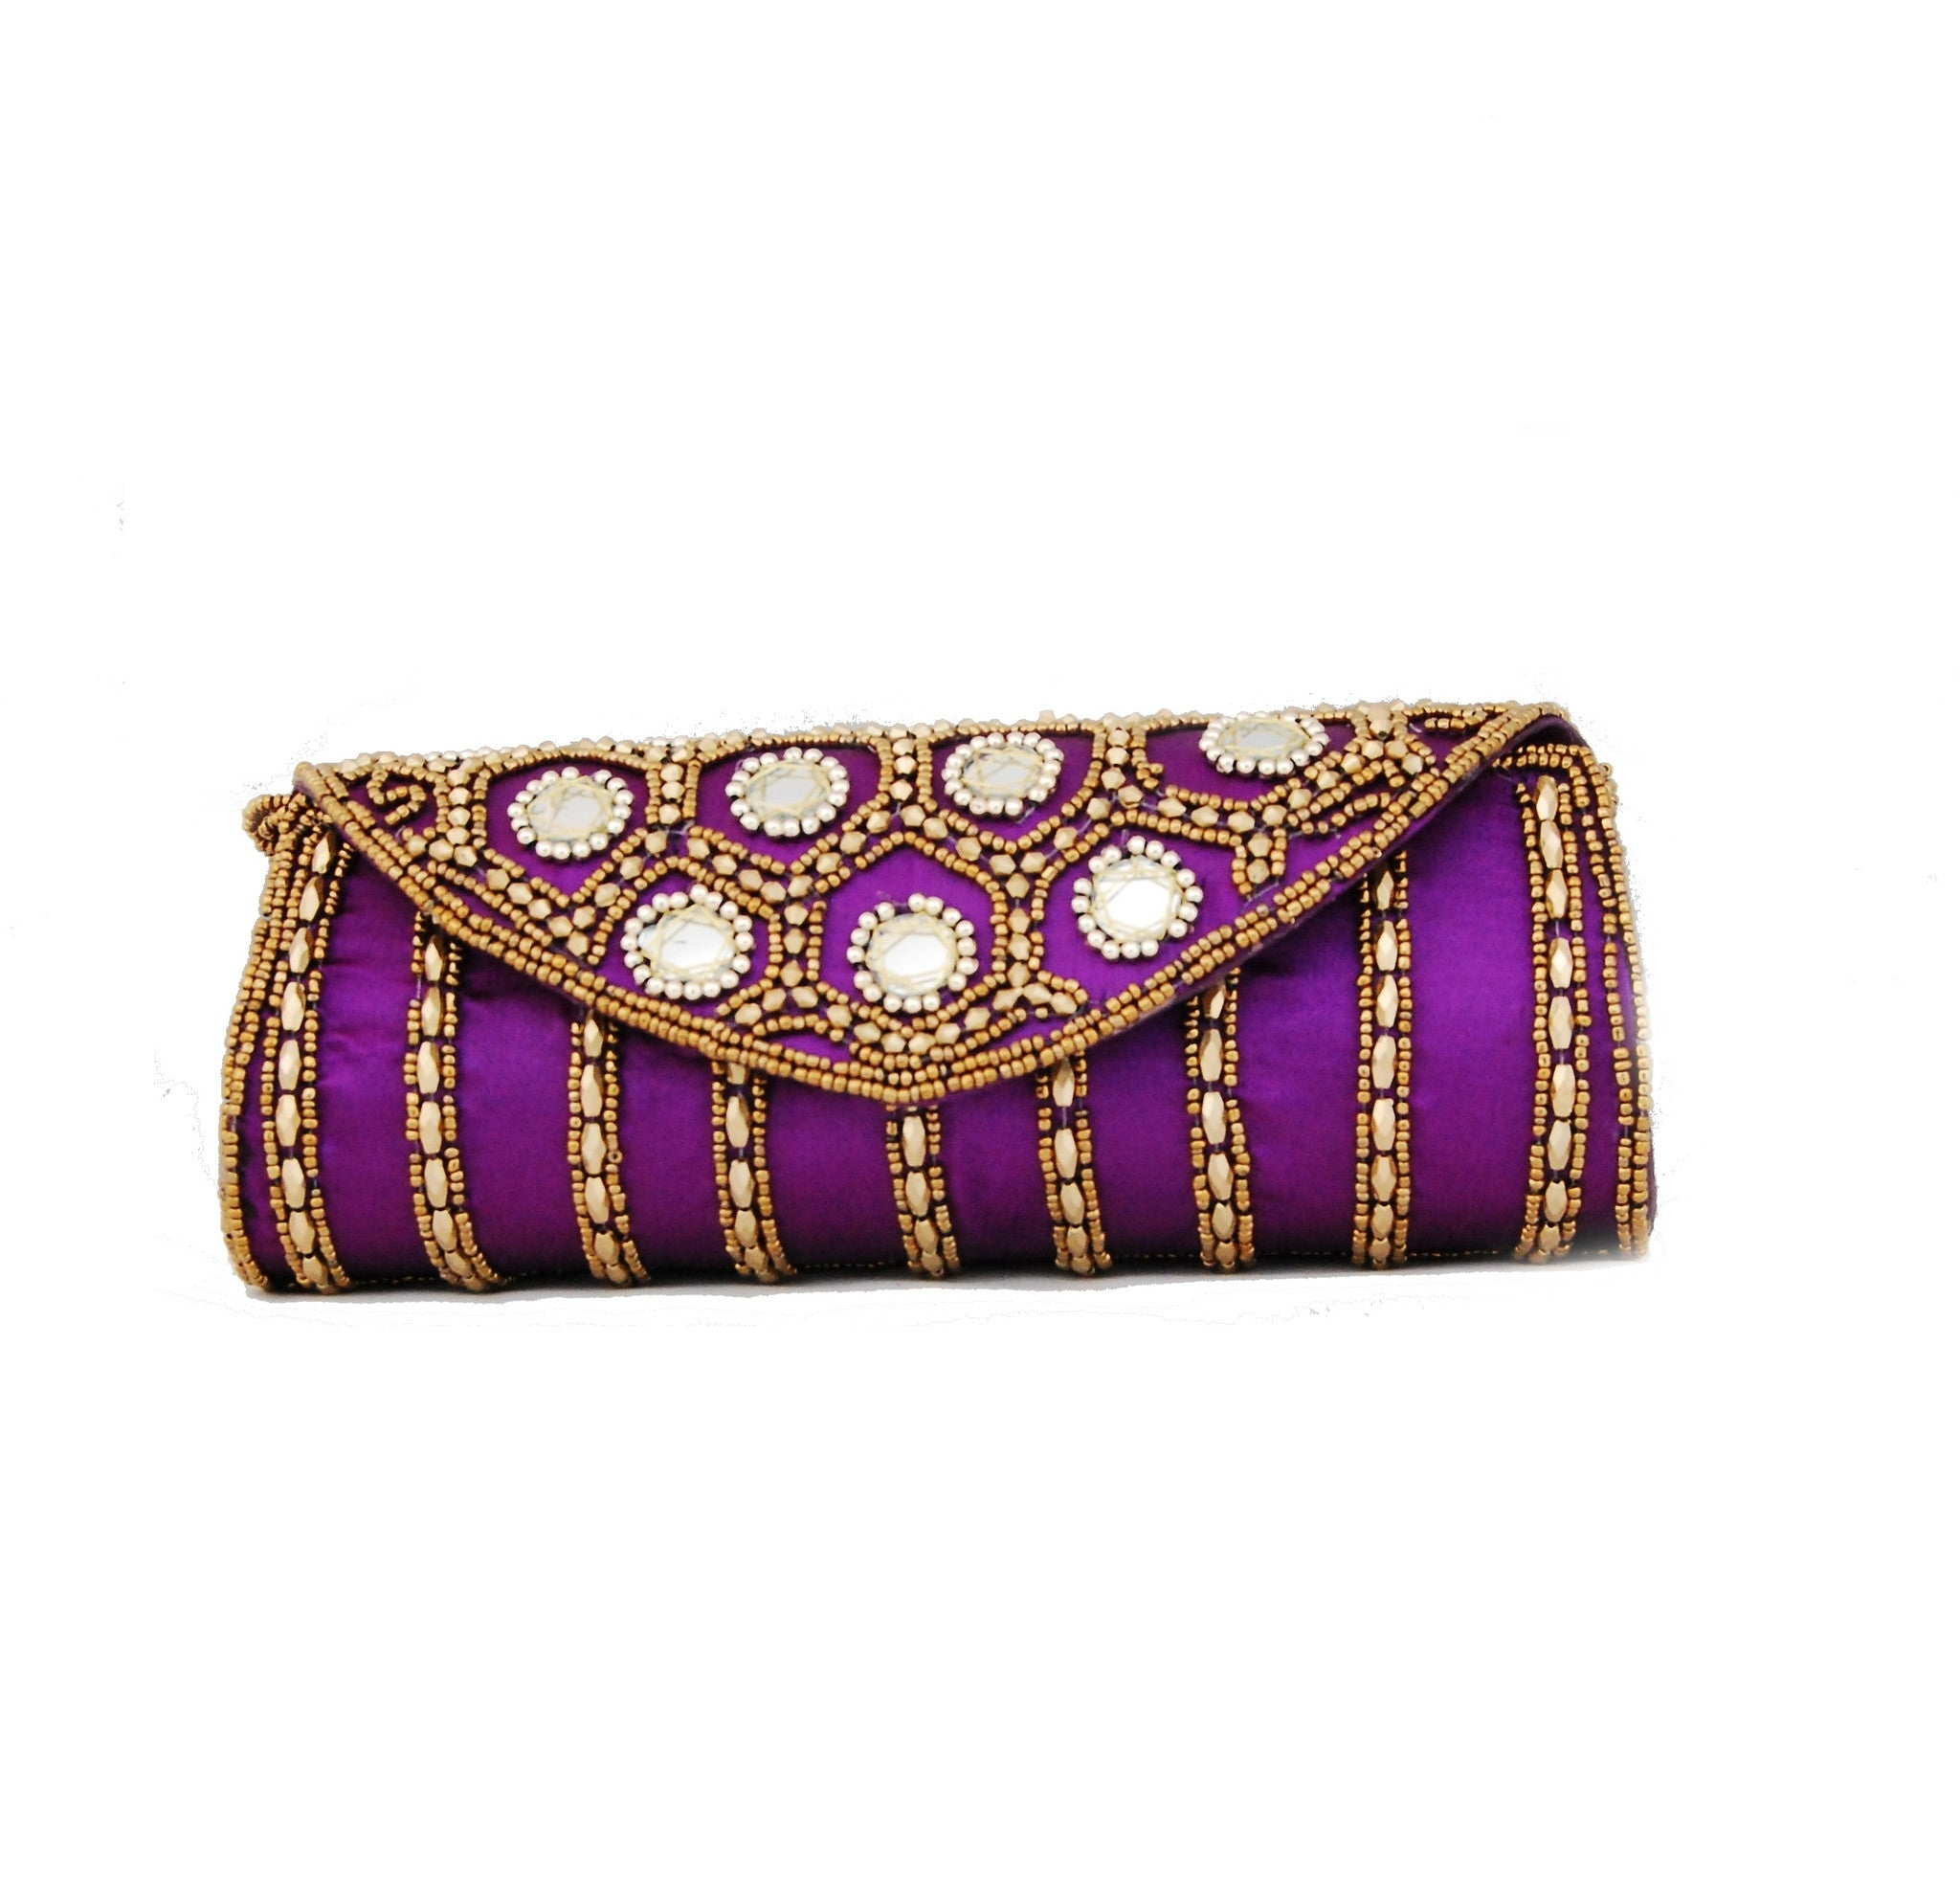 Purple color Dupion Silk Clutch Bag with beads and Stone work